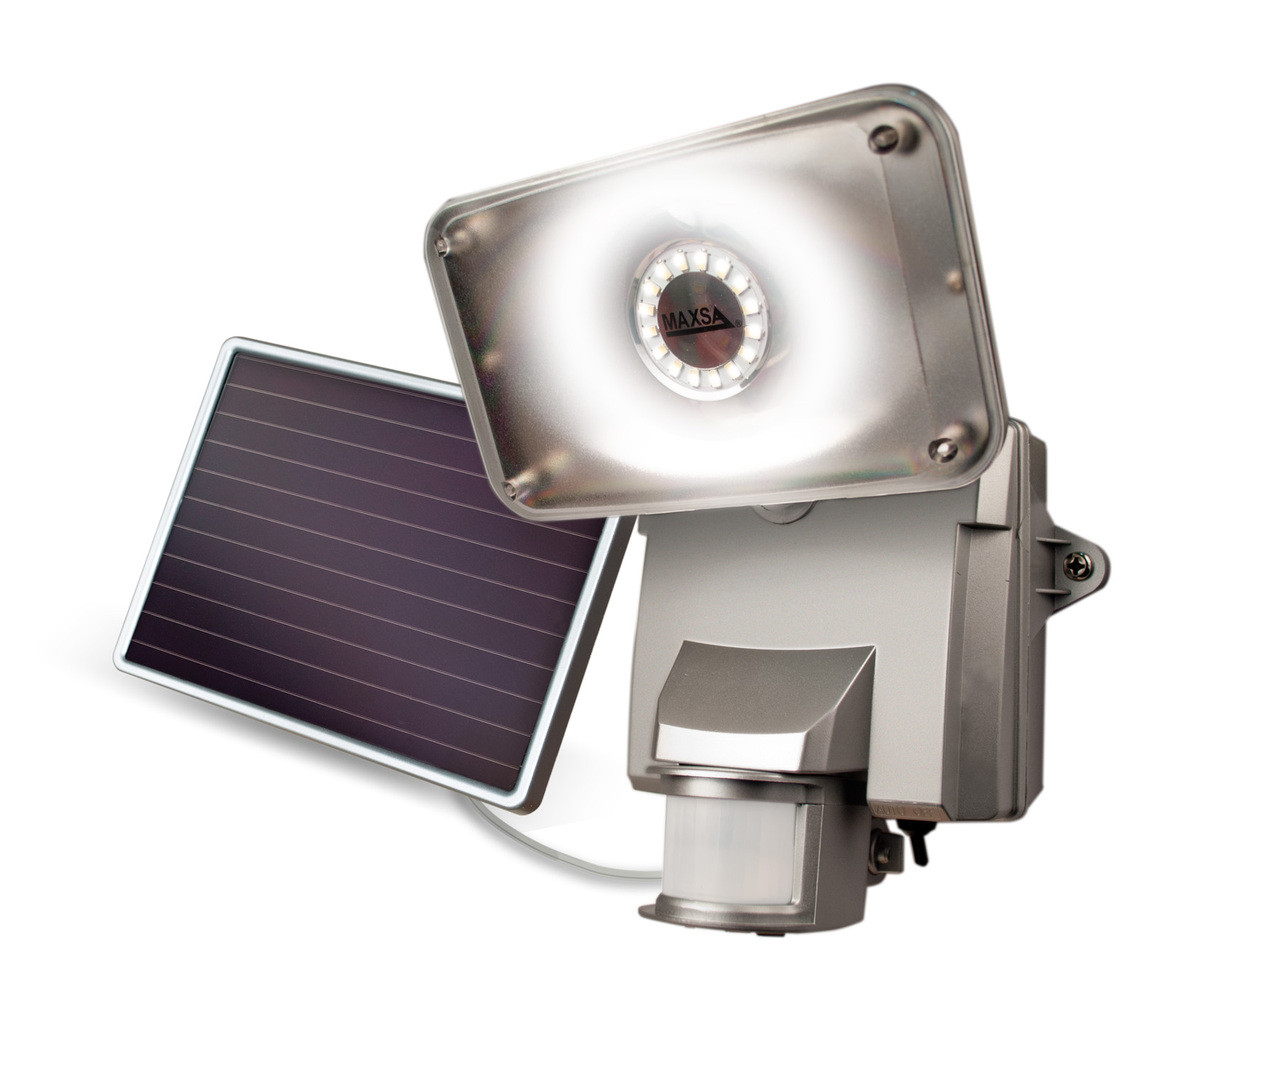 Maxsa bright solar security light in silver with 16 surface mount leds solar powered motion activated security floodlight with 16 smt leds aloadofball Gallery